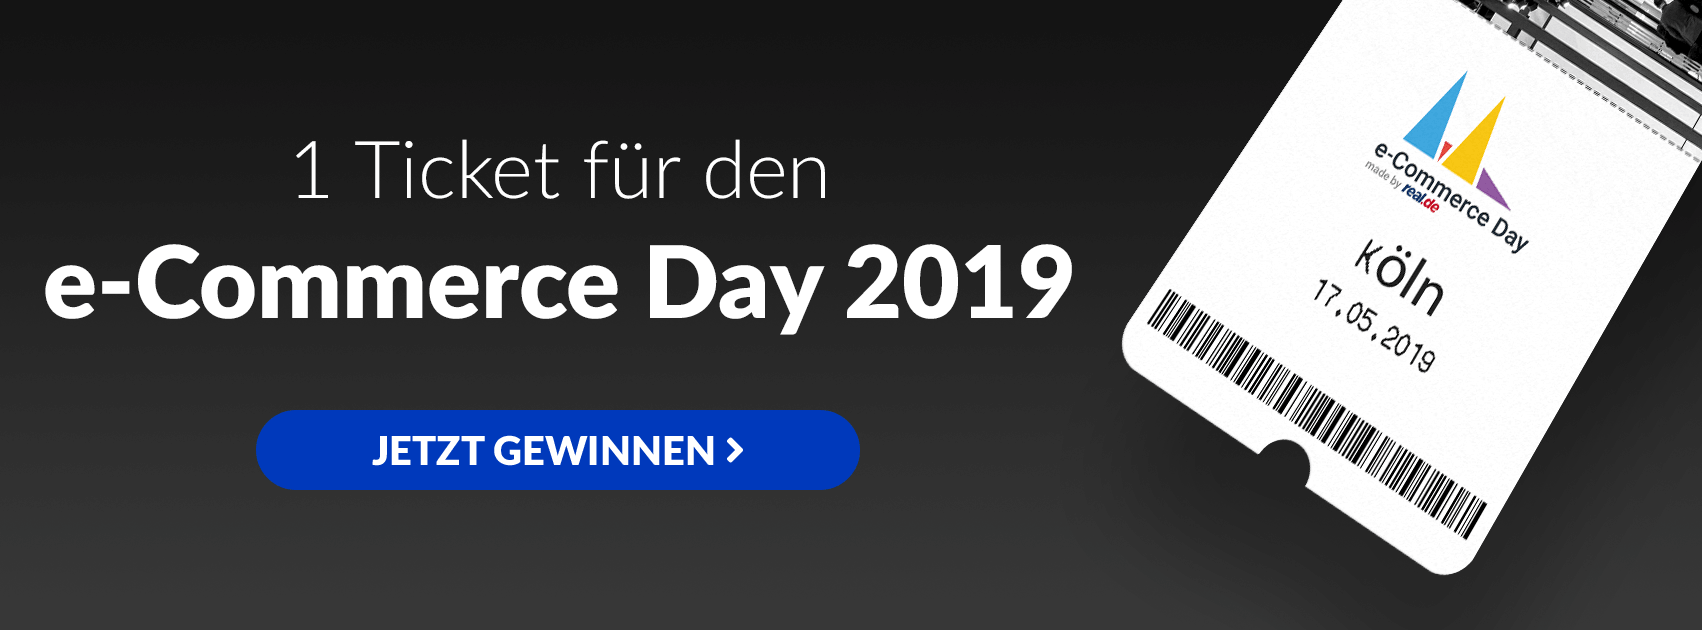 GrowthUp - Gewinnt ein Ticket zum e-Commerce Day